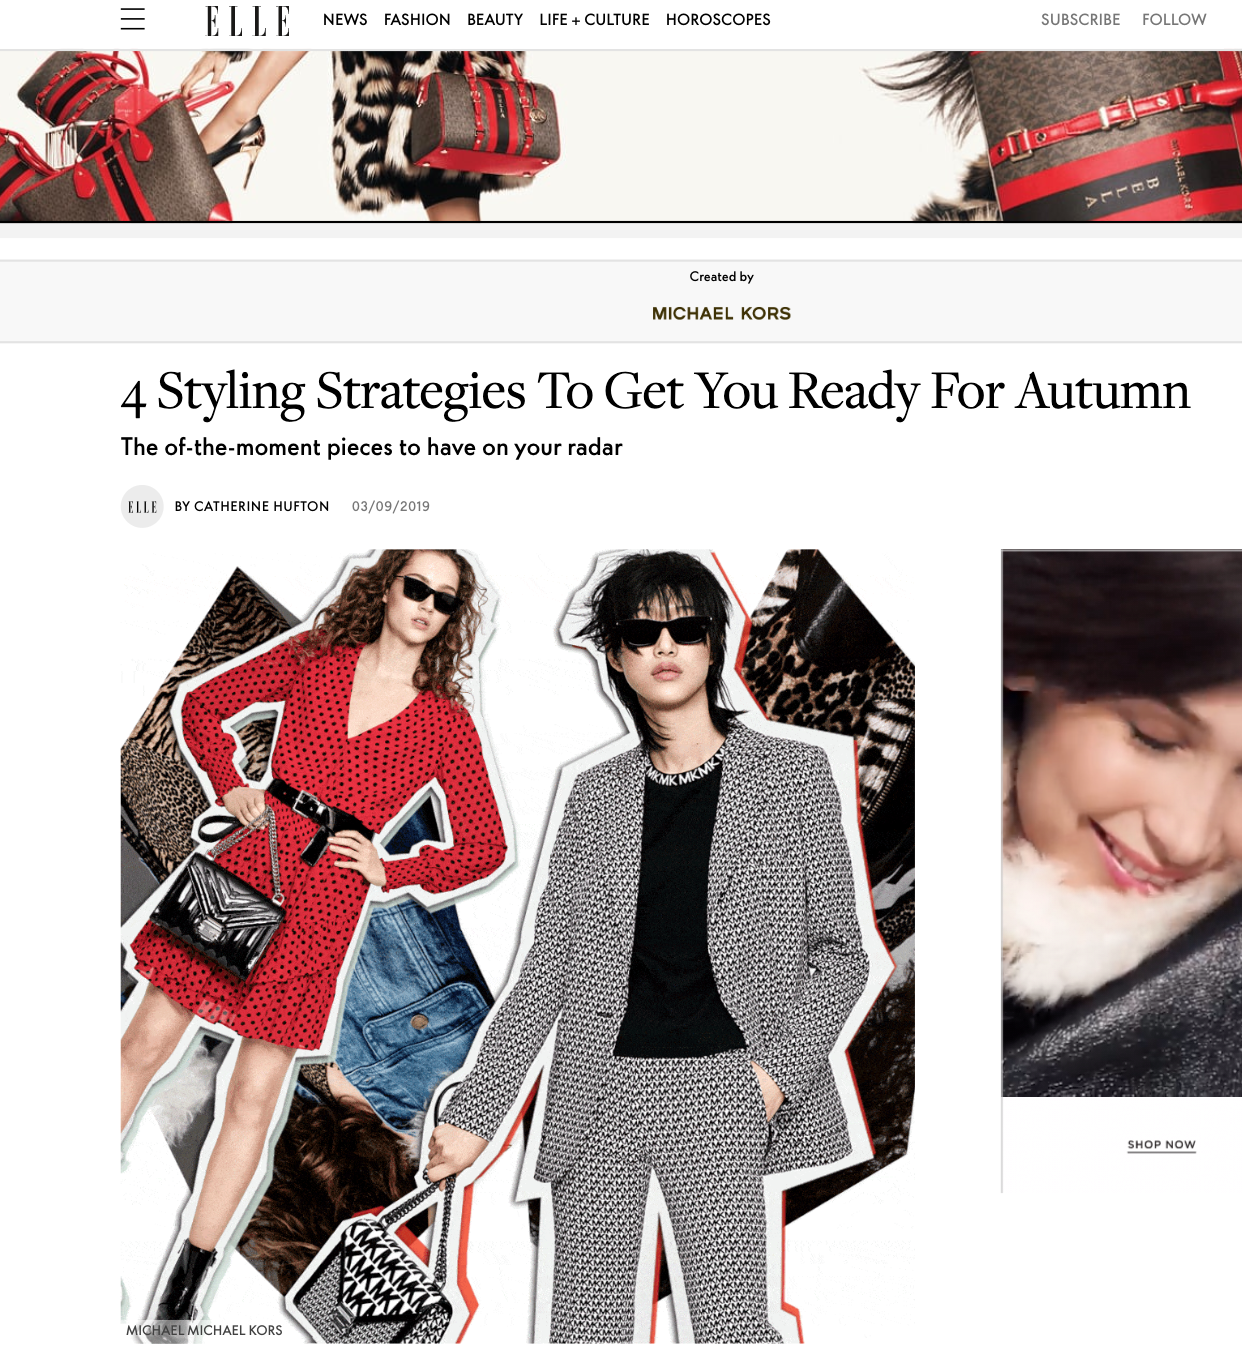 4 Styling Strategies to Get You Ready for Autumn